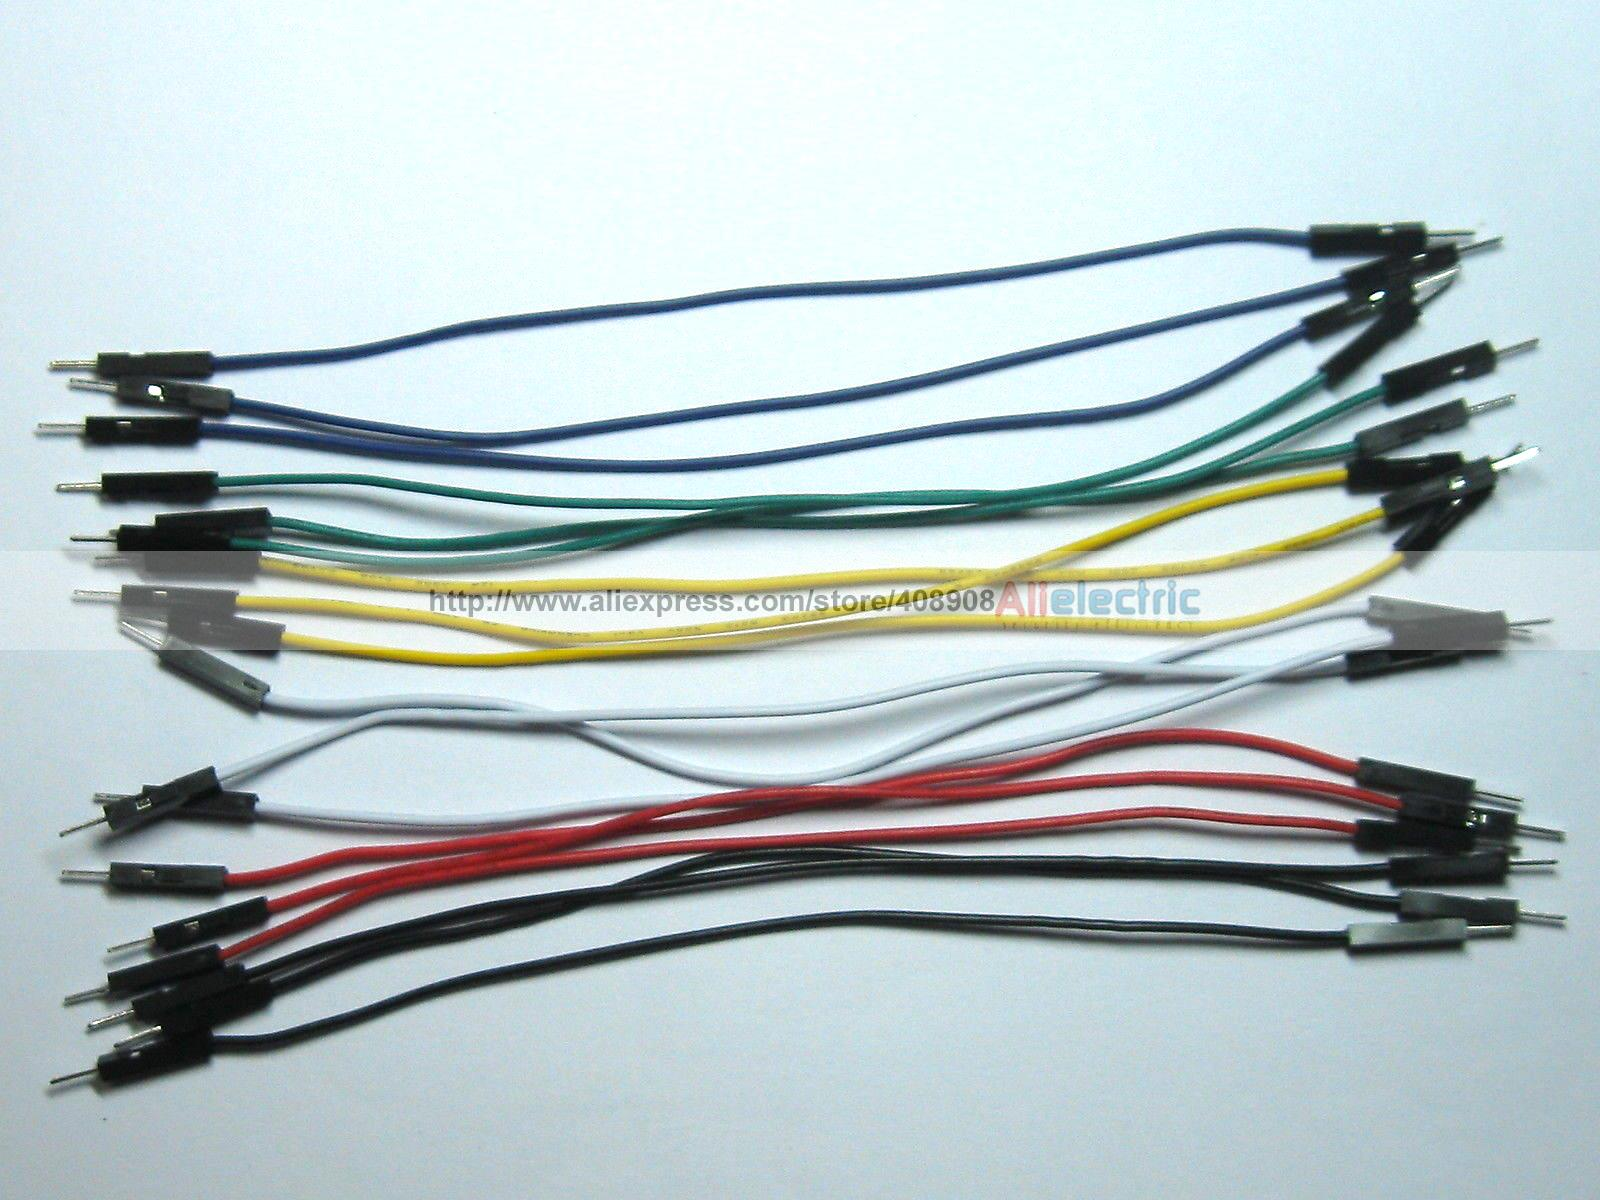 ФОТО 300 Pcs Jumper Wire Male to Male 1 Pin Pitch 2.54mm 6 Colors 15cm 6